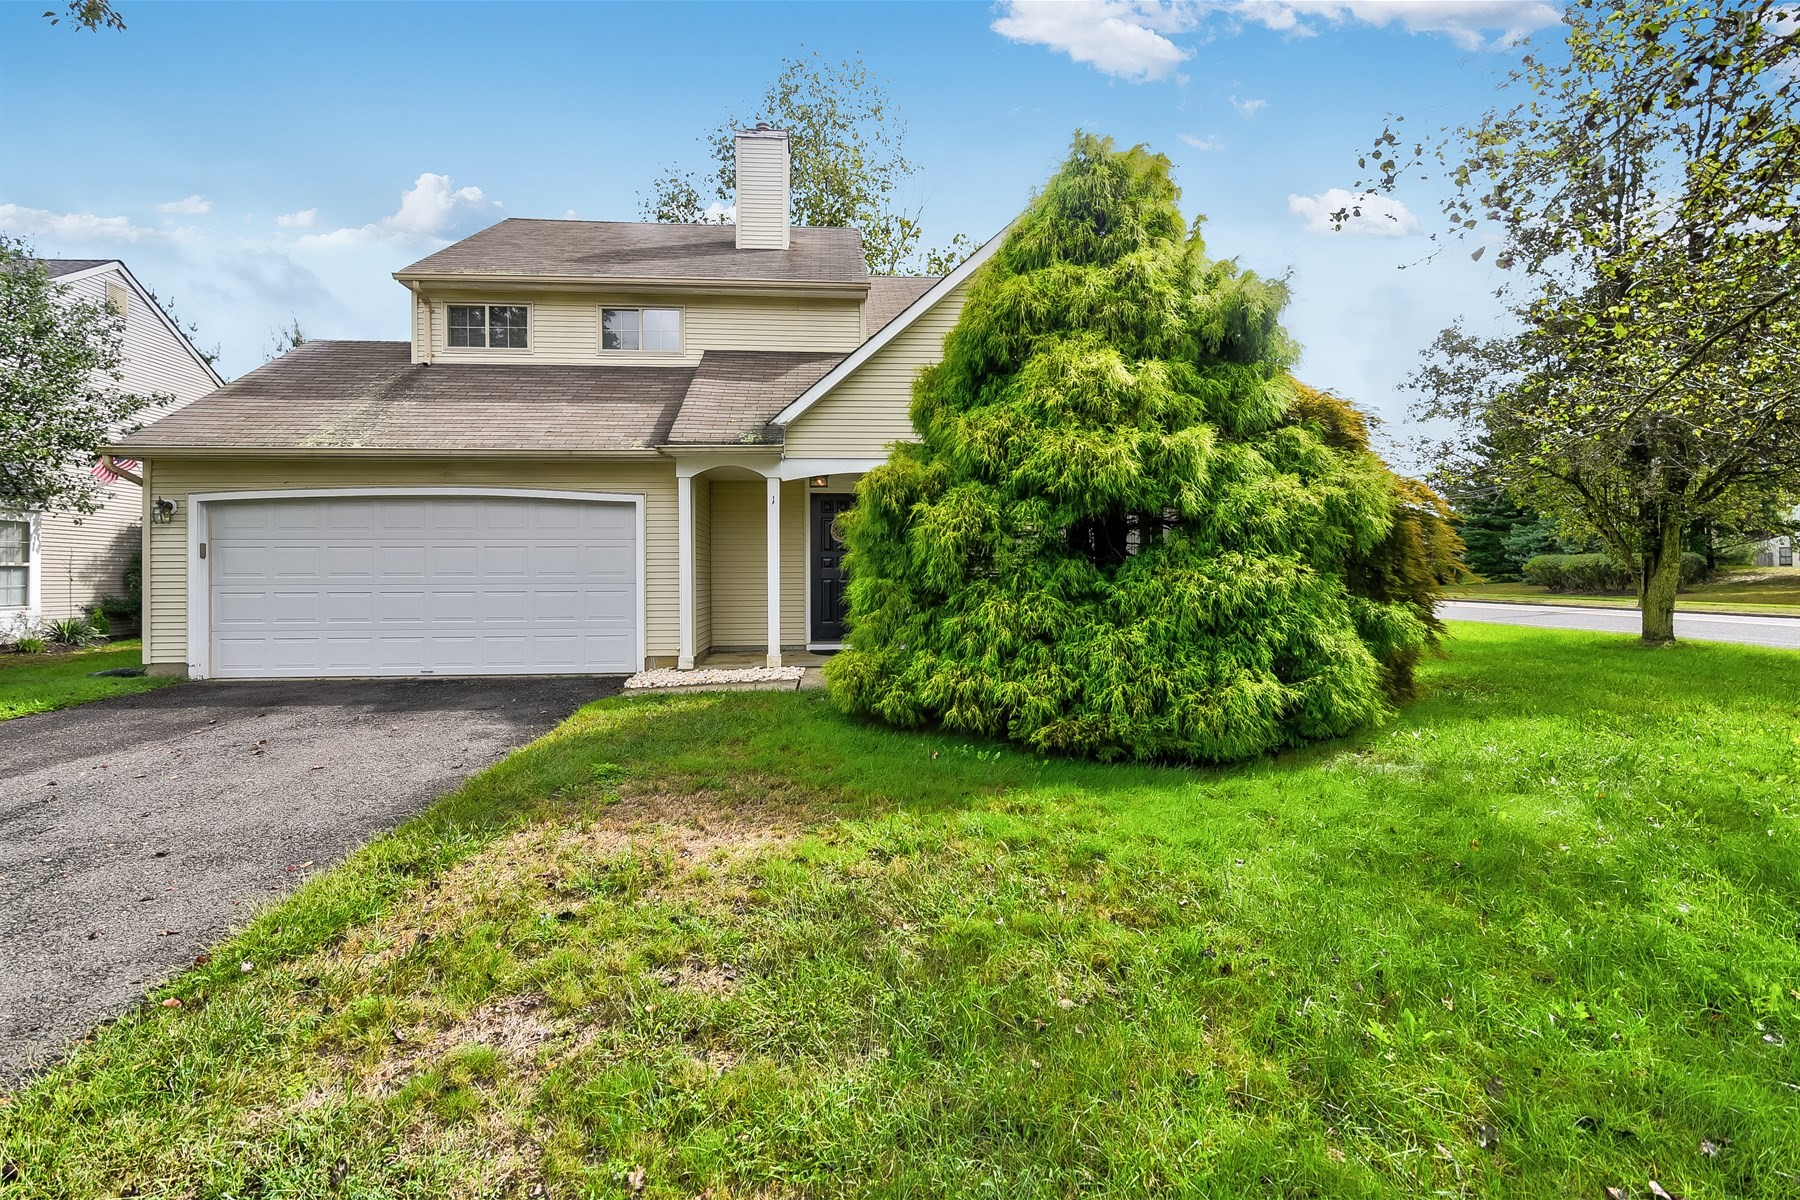 Single Family Home for Sale at 1 Longbrook Lane Freehold, New Jersey 07728 United States